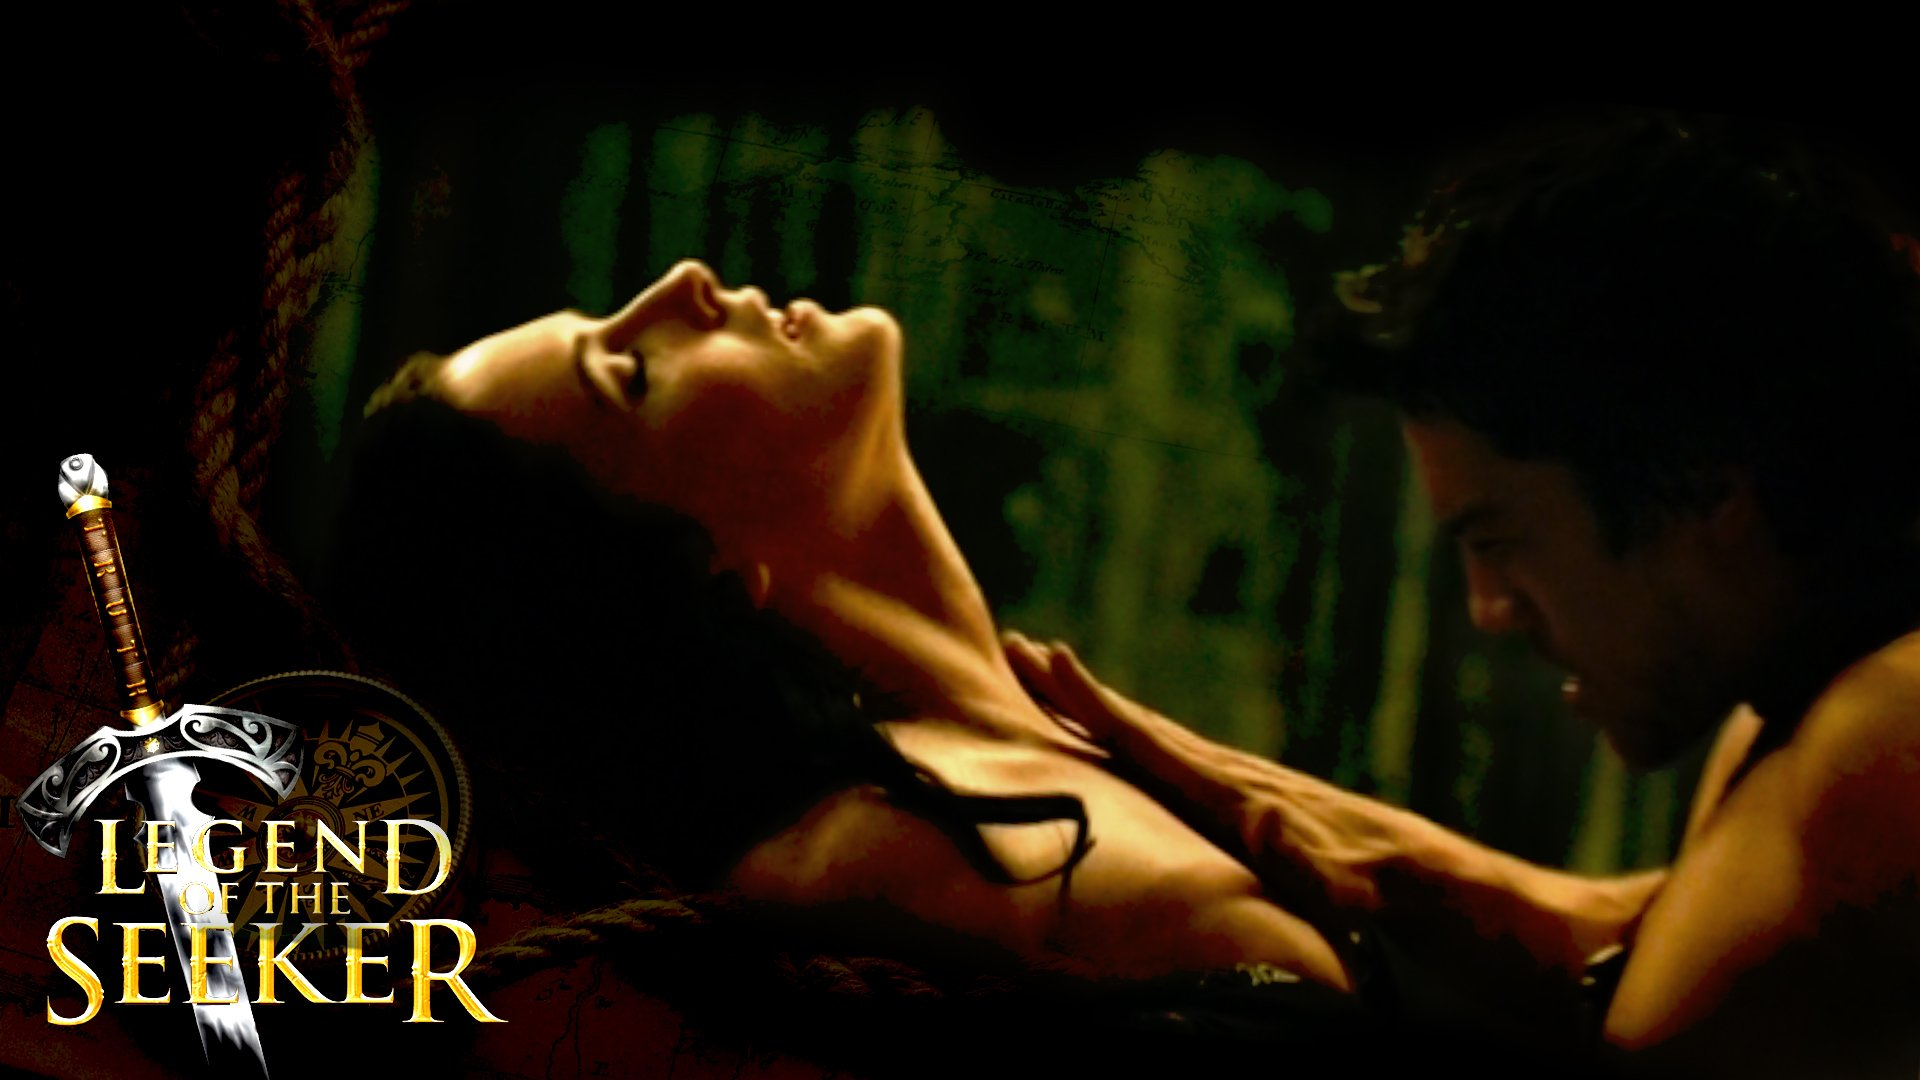 Legend of the seeker naked excited